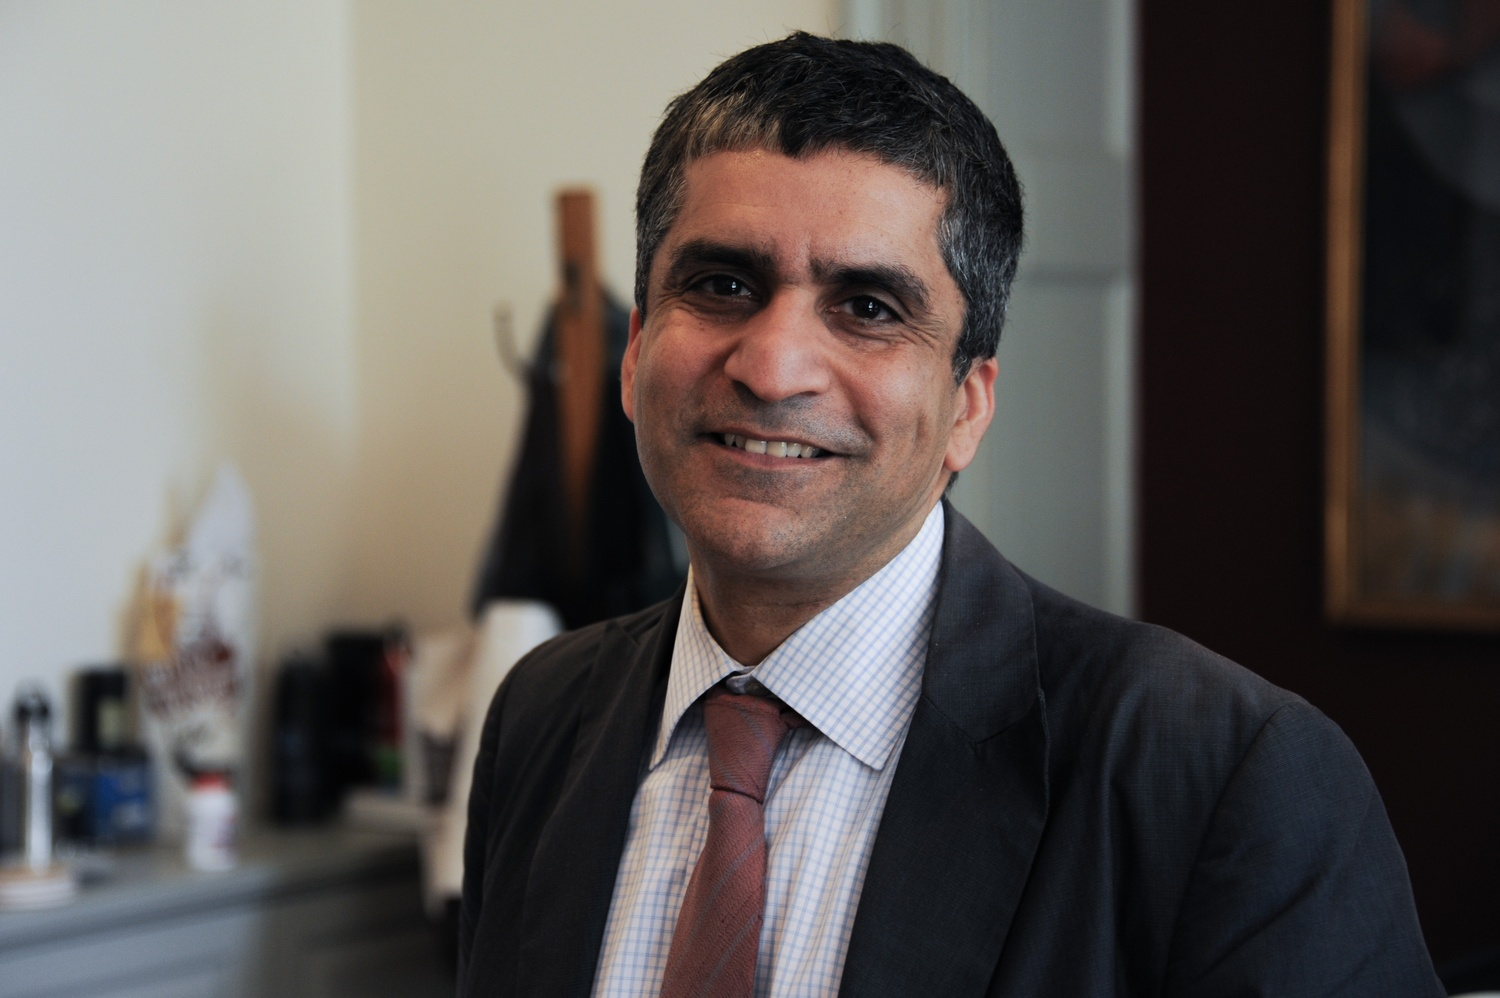 Dean of the College Rakesh Khurana holds professorships in Sociology in the Faculty of Arts & Sciences and Leadership Development at Harvard Business School.